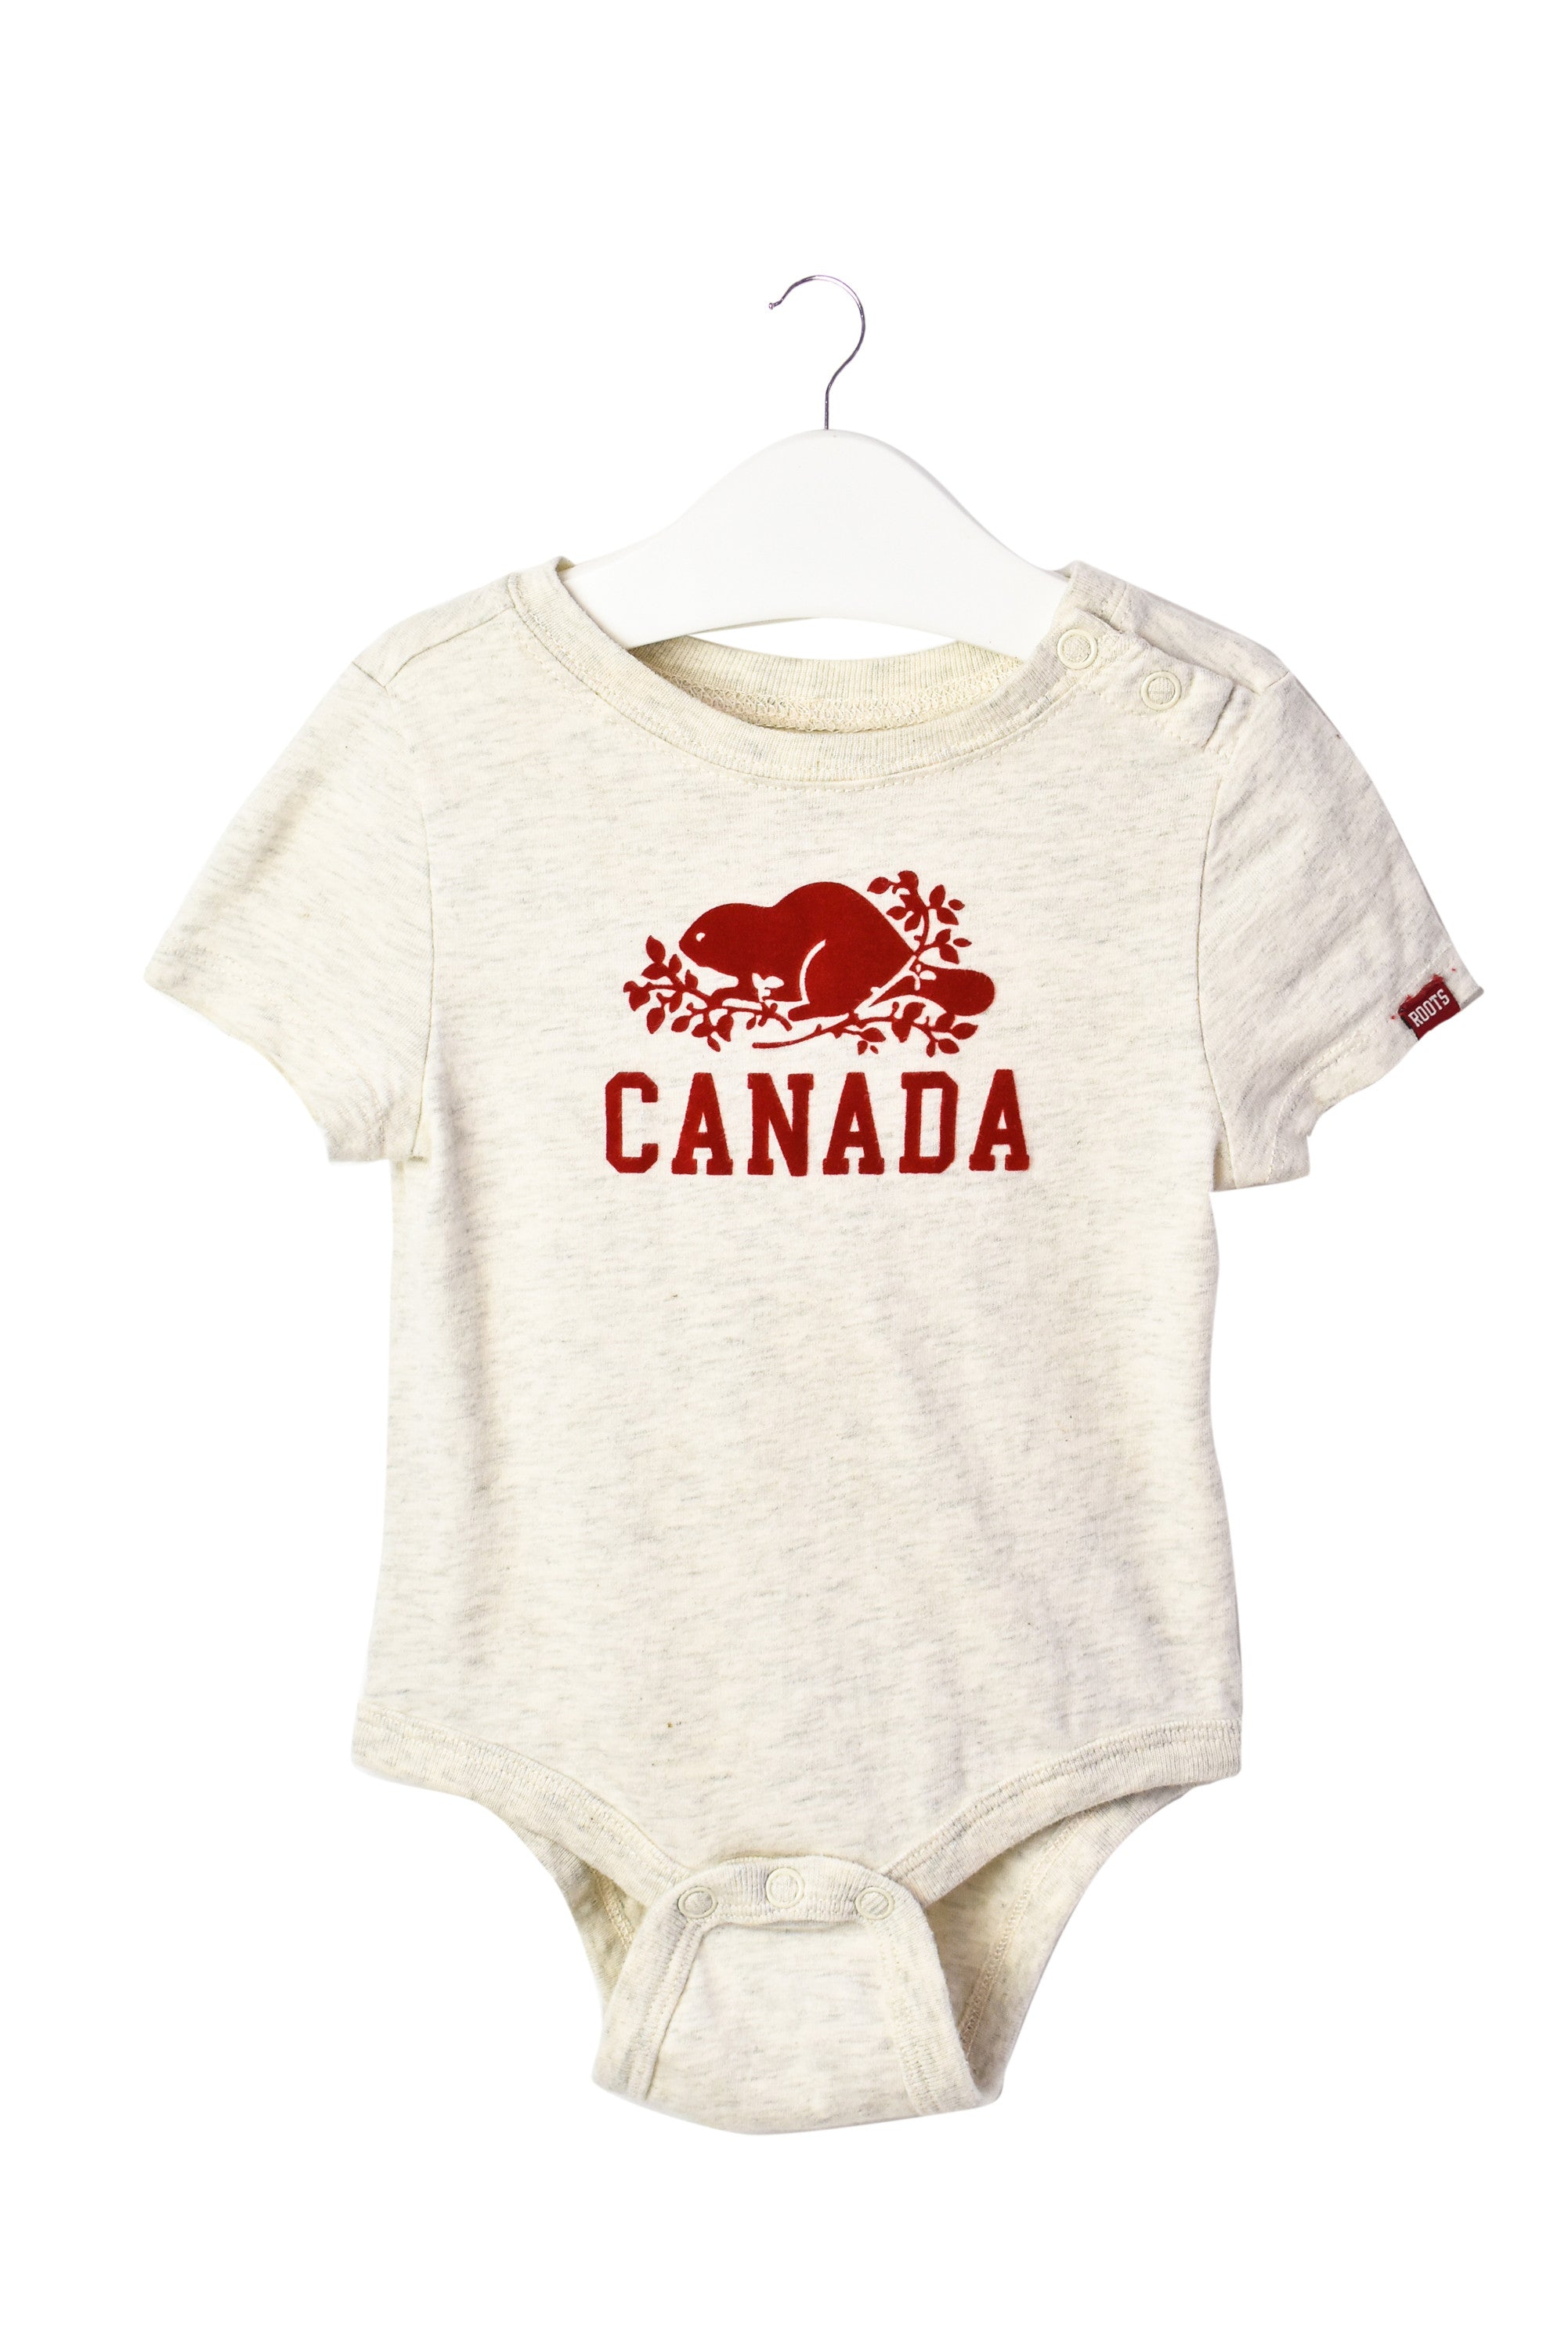 10004850 Roots Baby~Bodysuit 3-6M, Roots Retykle | Online Baby & Kids Clothing Hong Kong